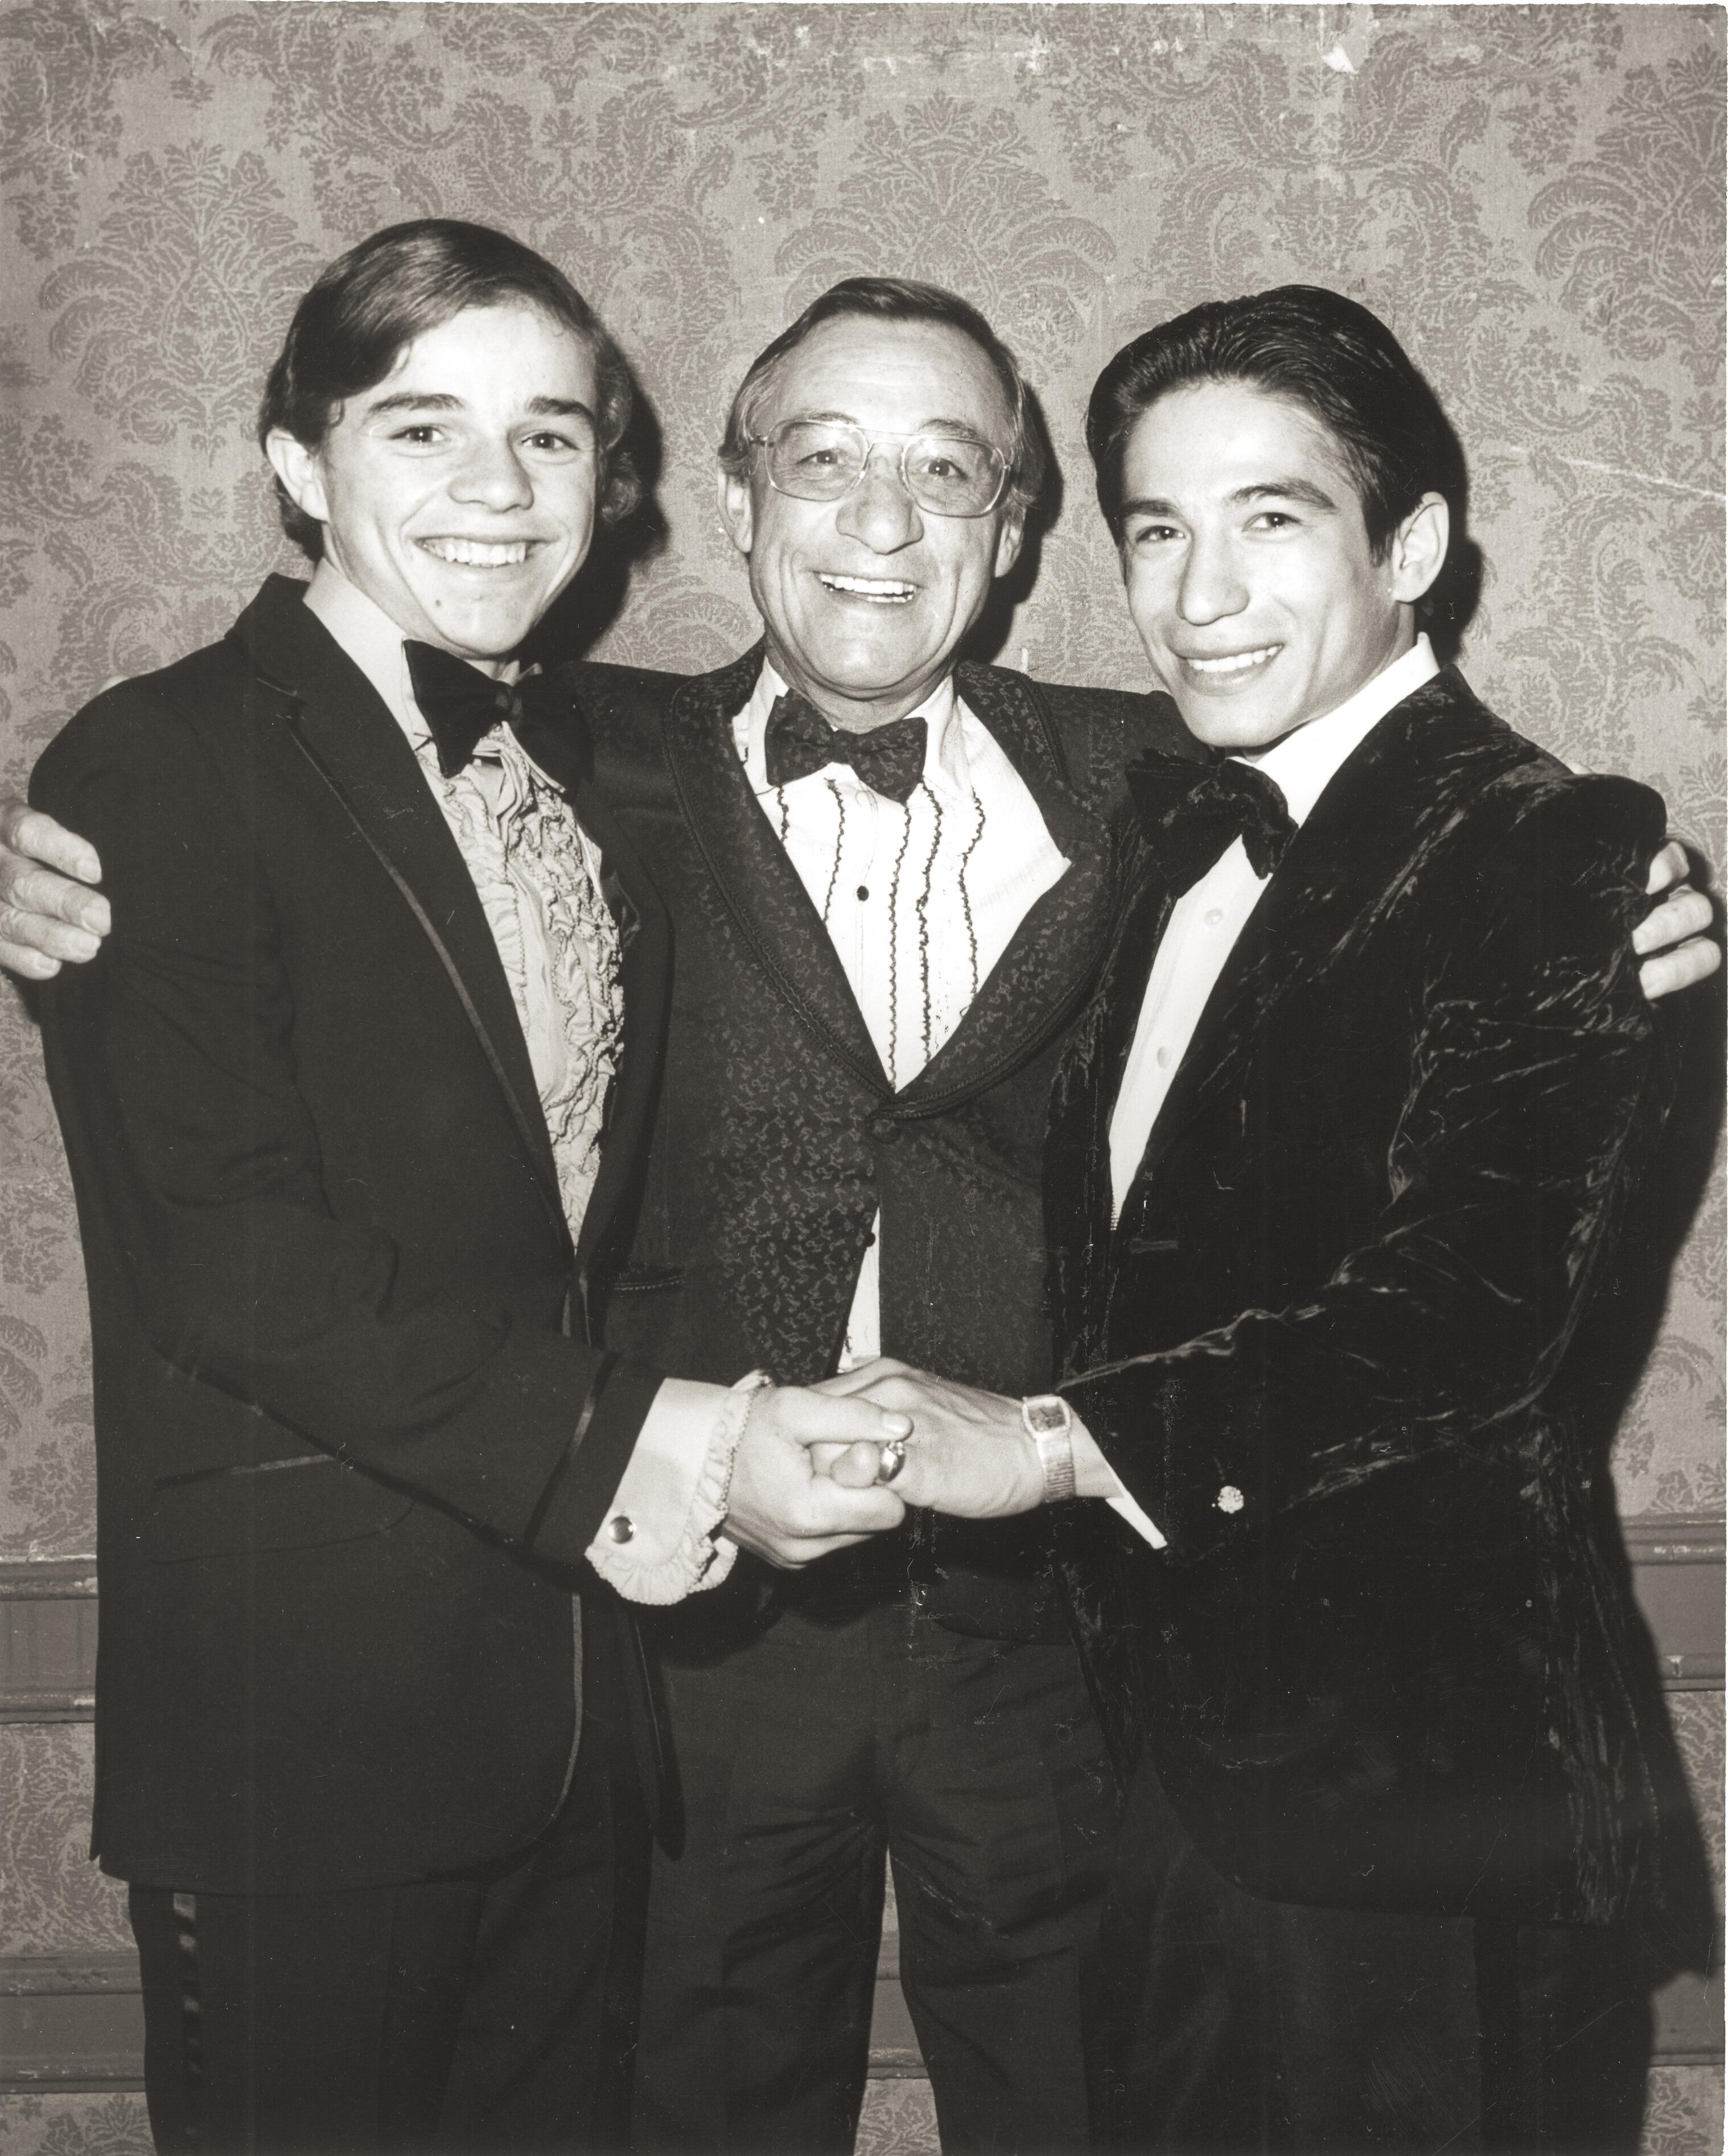 Pincay (right) with jockeys Gene St. Leon and Eddie Arcaro in 1972.